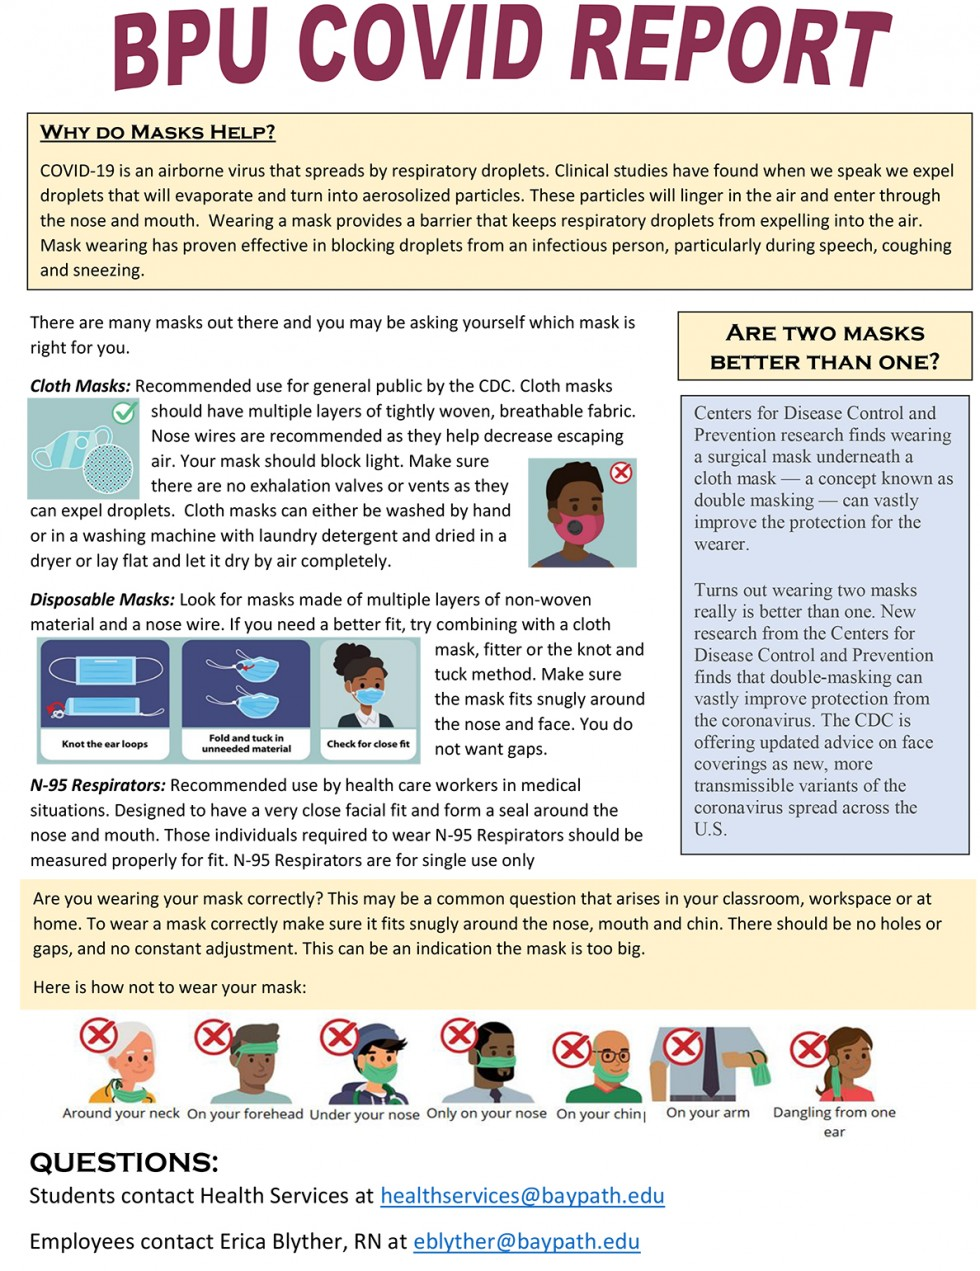 Public Service Announcement regarding mask wearing. Download a PDF version above this image. Text version below this image